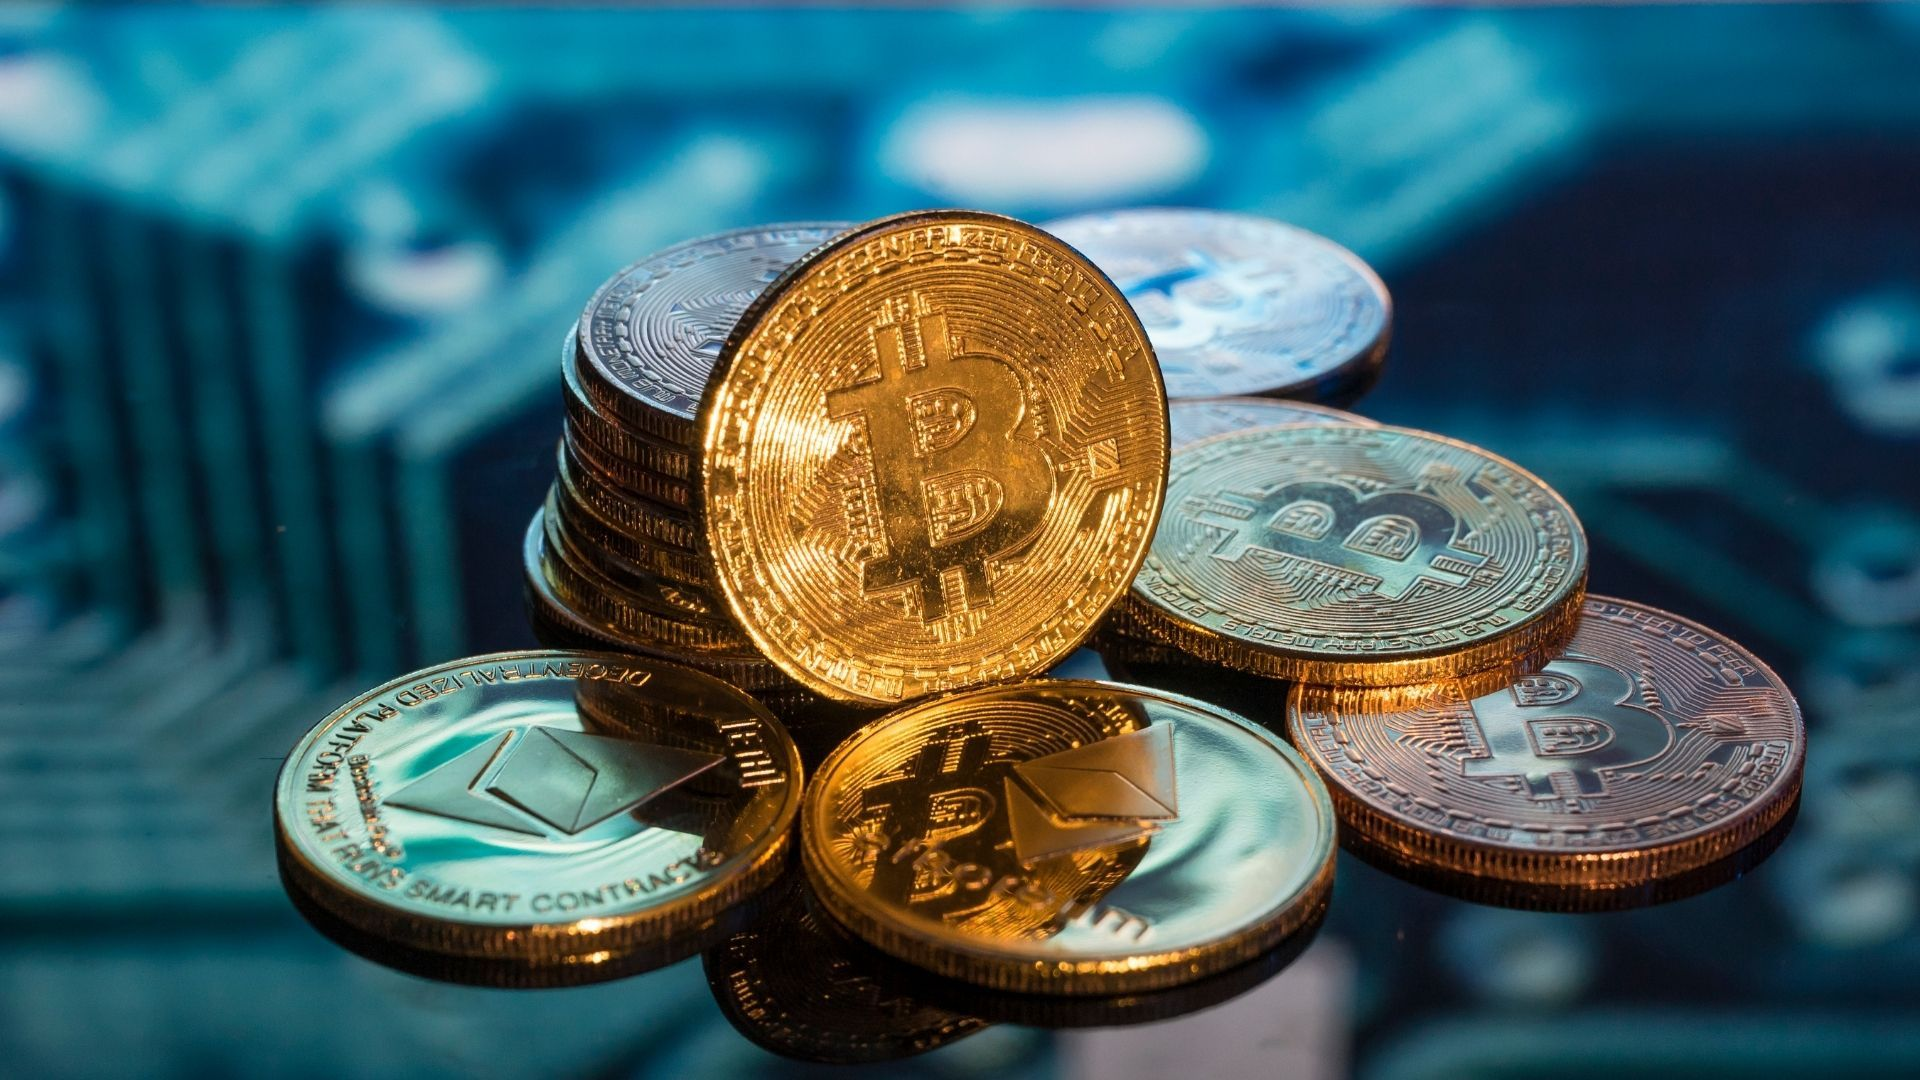 Bitcoin and other cryptocurrencies